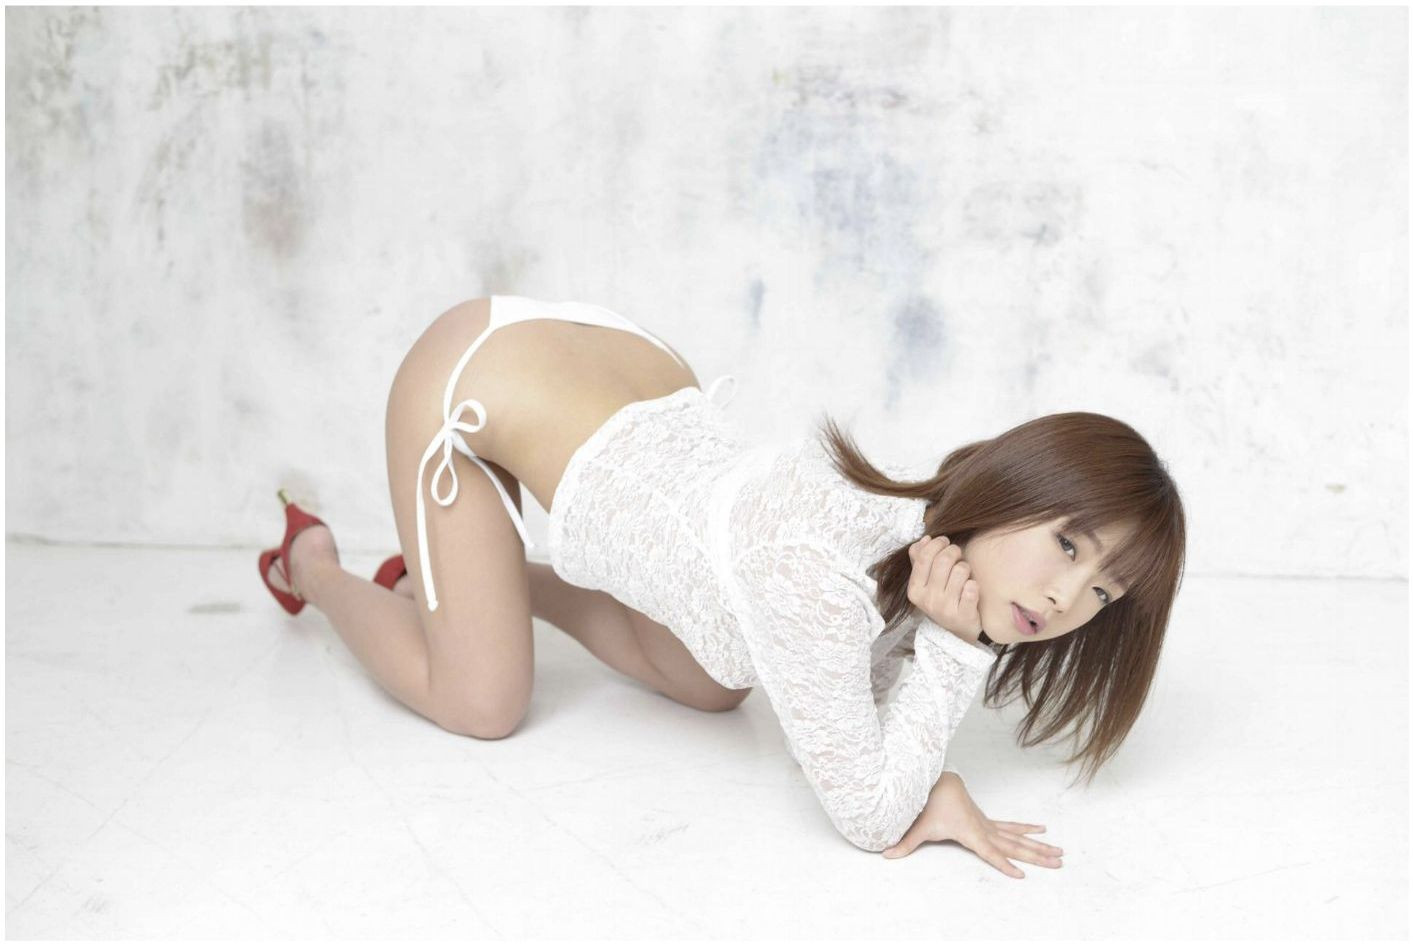 SOFT ON DEMAND GRAVURE COLLECTION 紗倉まな04 photo 035